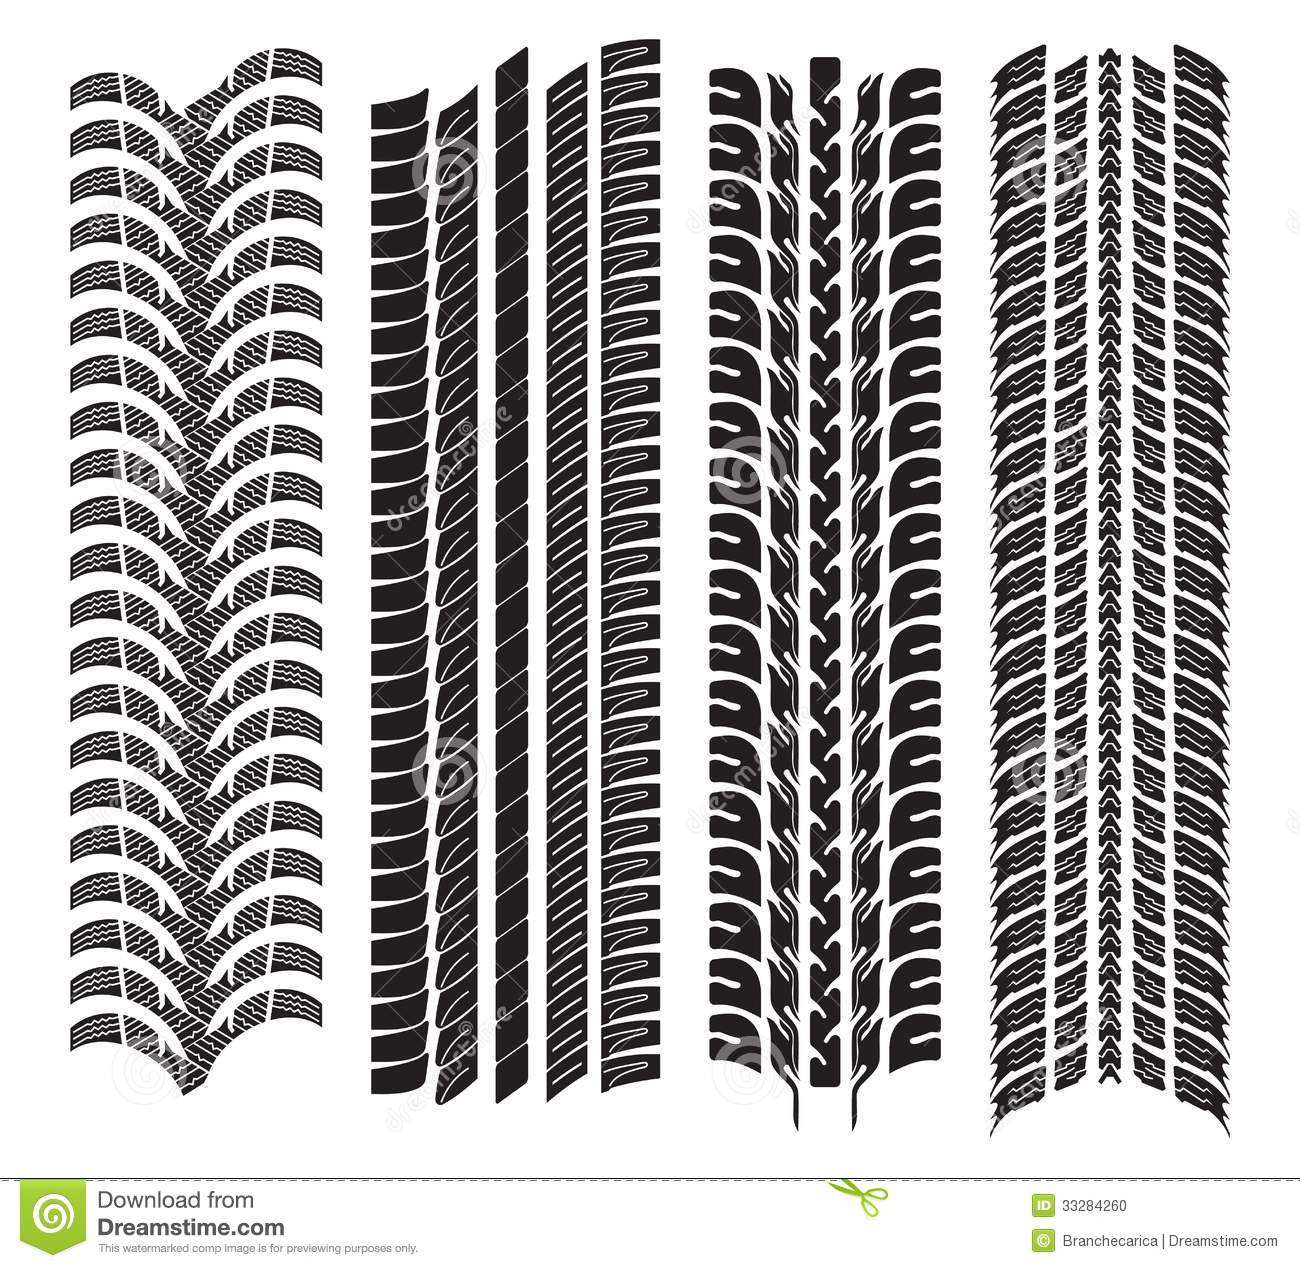 Tire tread patterns clipart graphic freeuse library Various Tyre Treads Stock Photo - Image: 33284260 graphic freeuse library